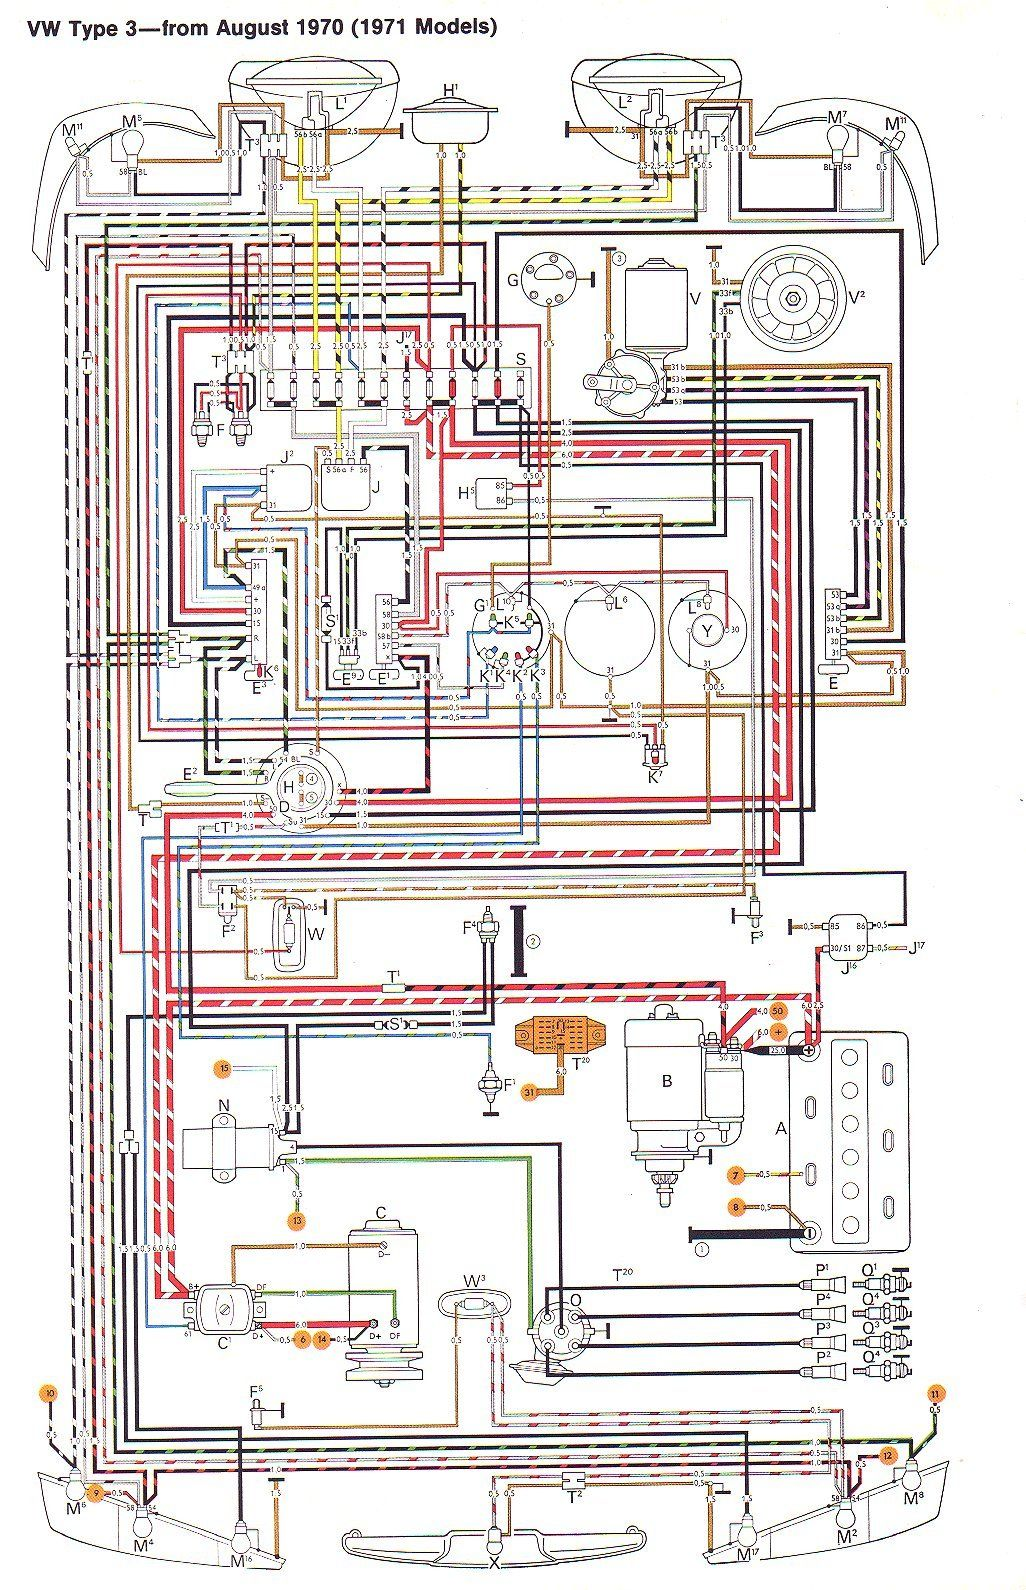 e0db58370f79a63d02d45f00cf63f44a 71 vw t3 wiring diagram ruthie pinterest volkswagen, engine 1960 vw bus wiring diagram at fashall.co